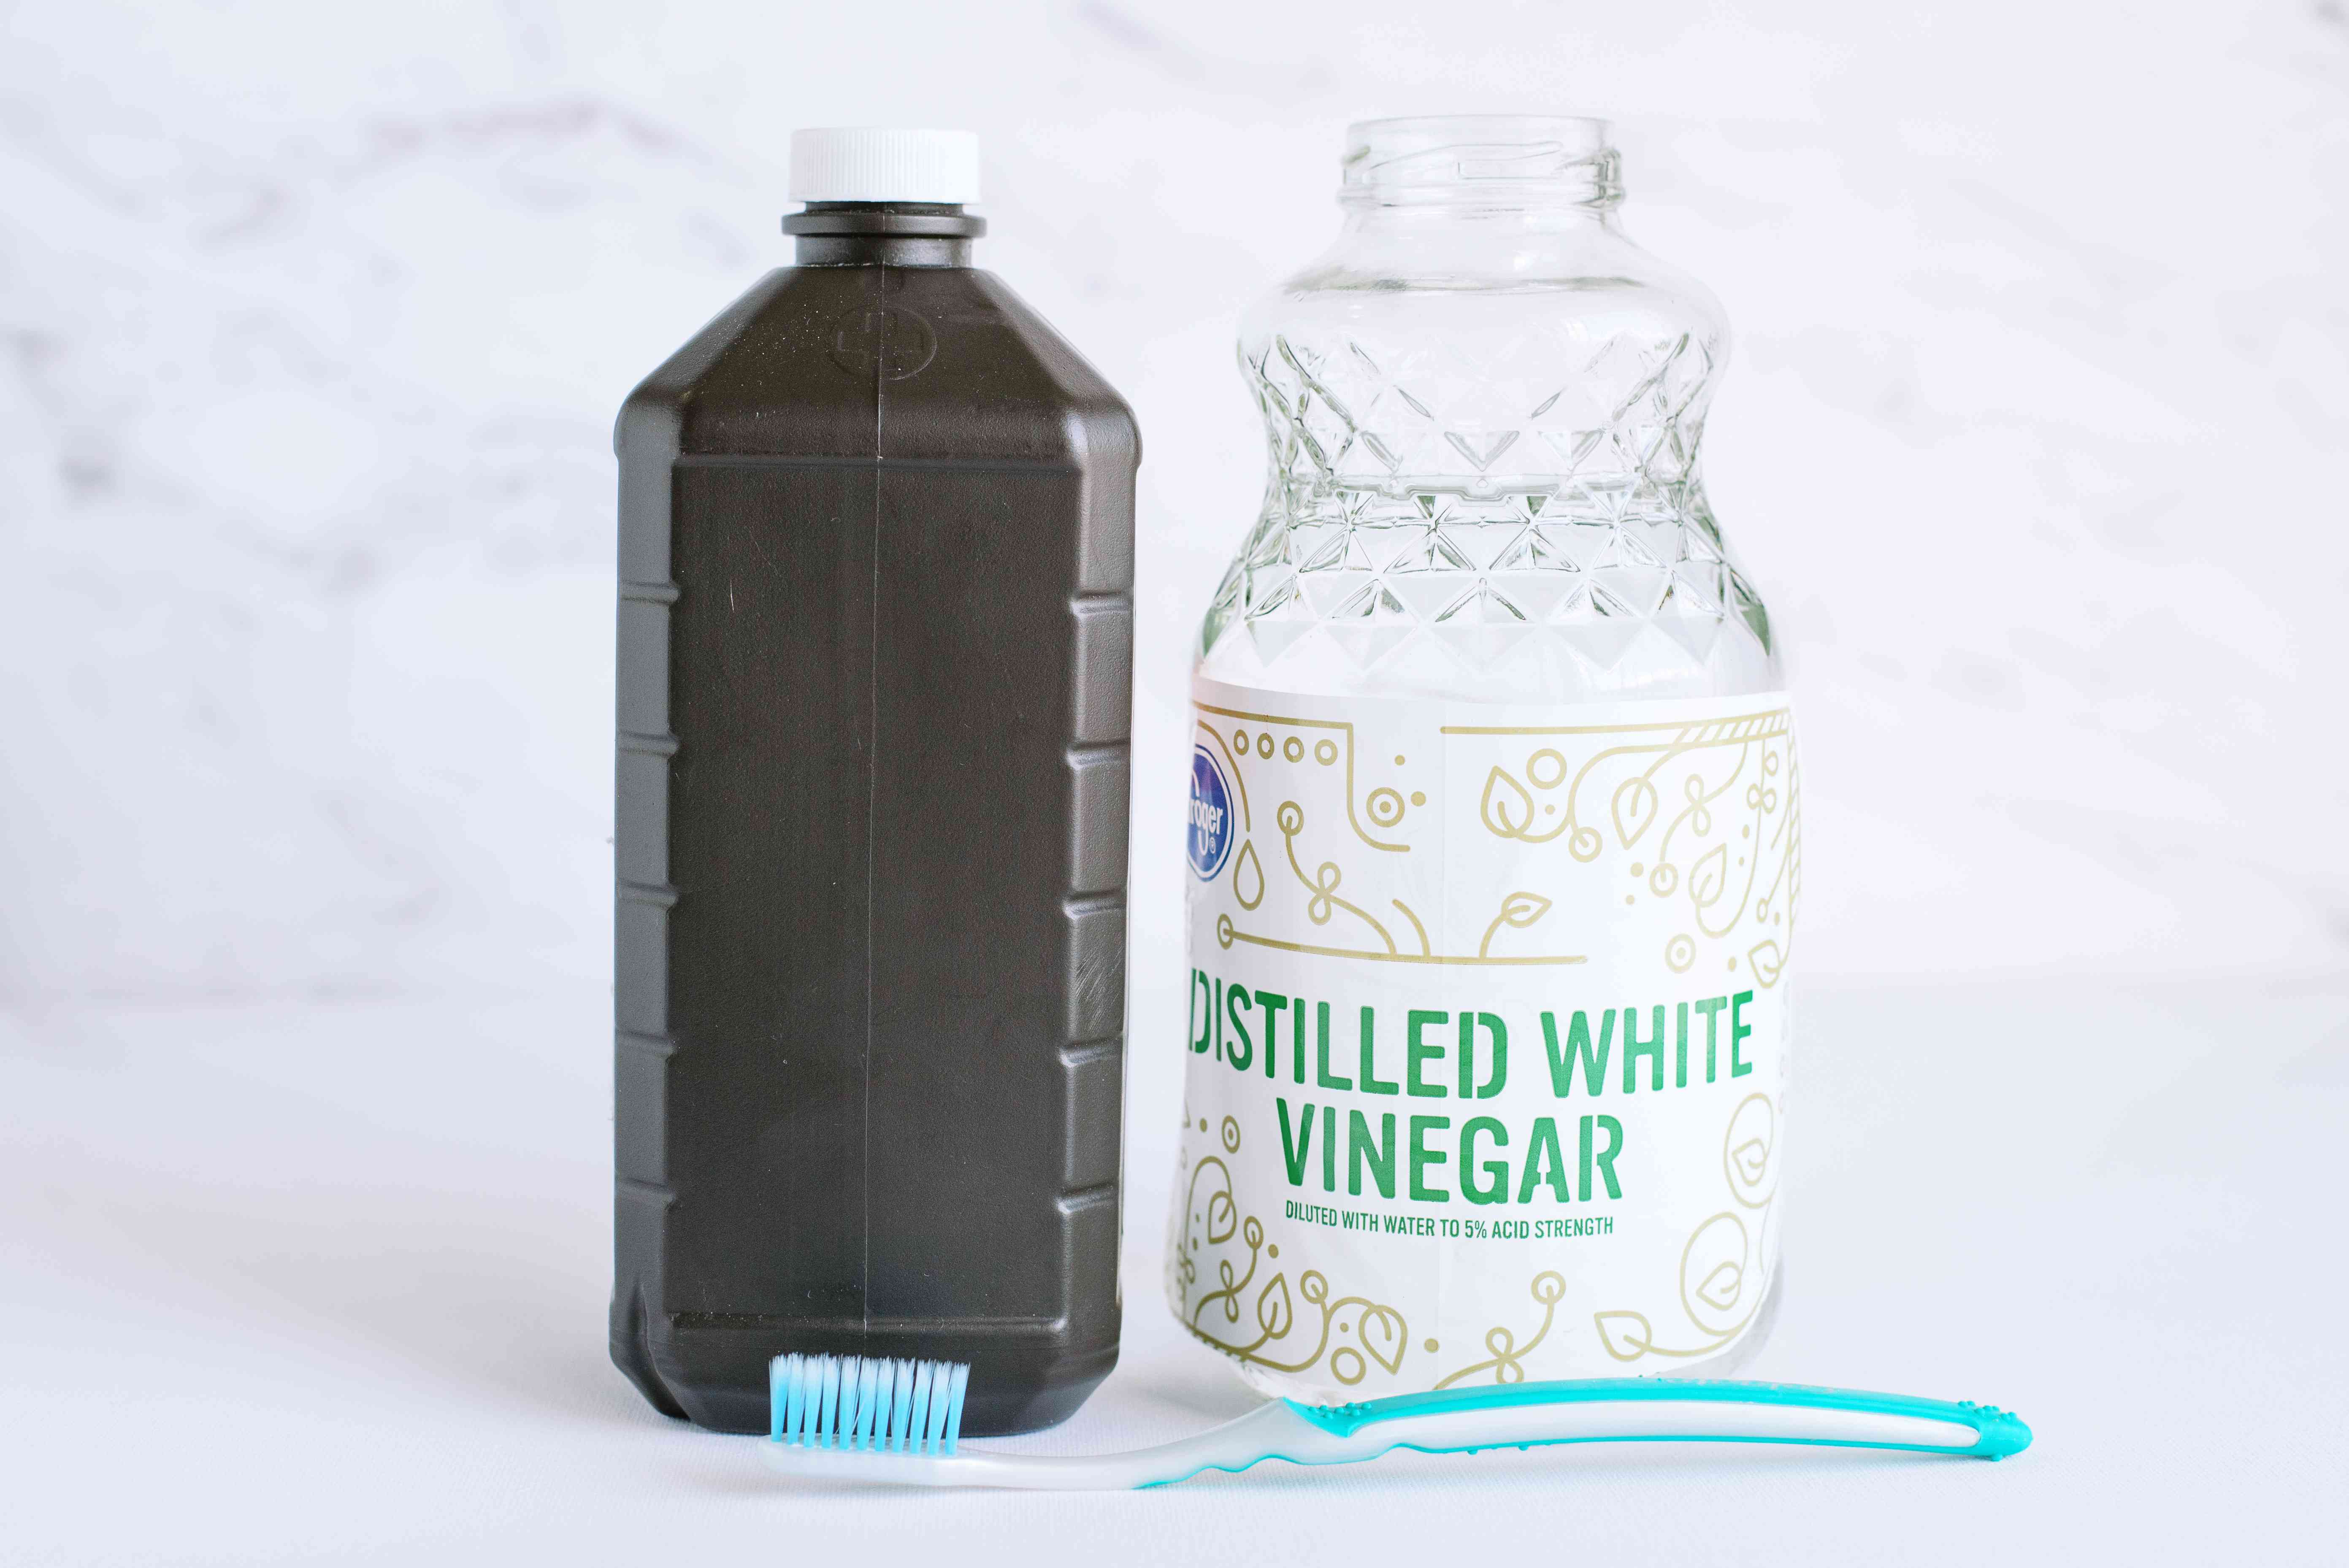 Brown bottle of hydrogen peroxide, glass container of distilled white vinegar and a toothbrush to clean portable humidifier